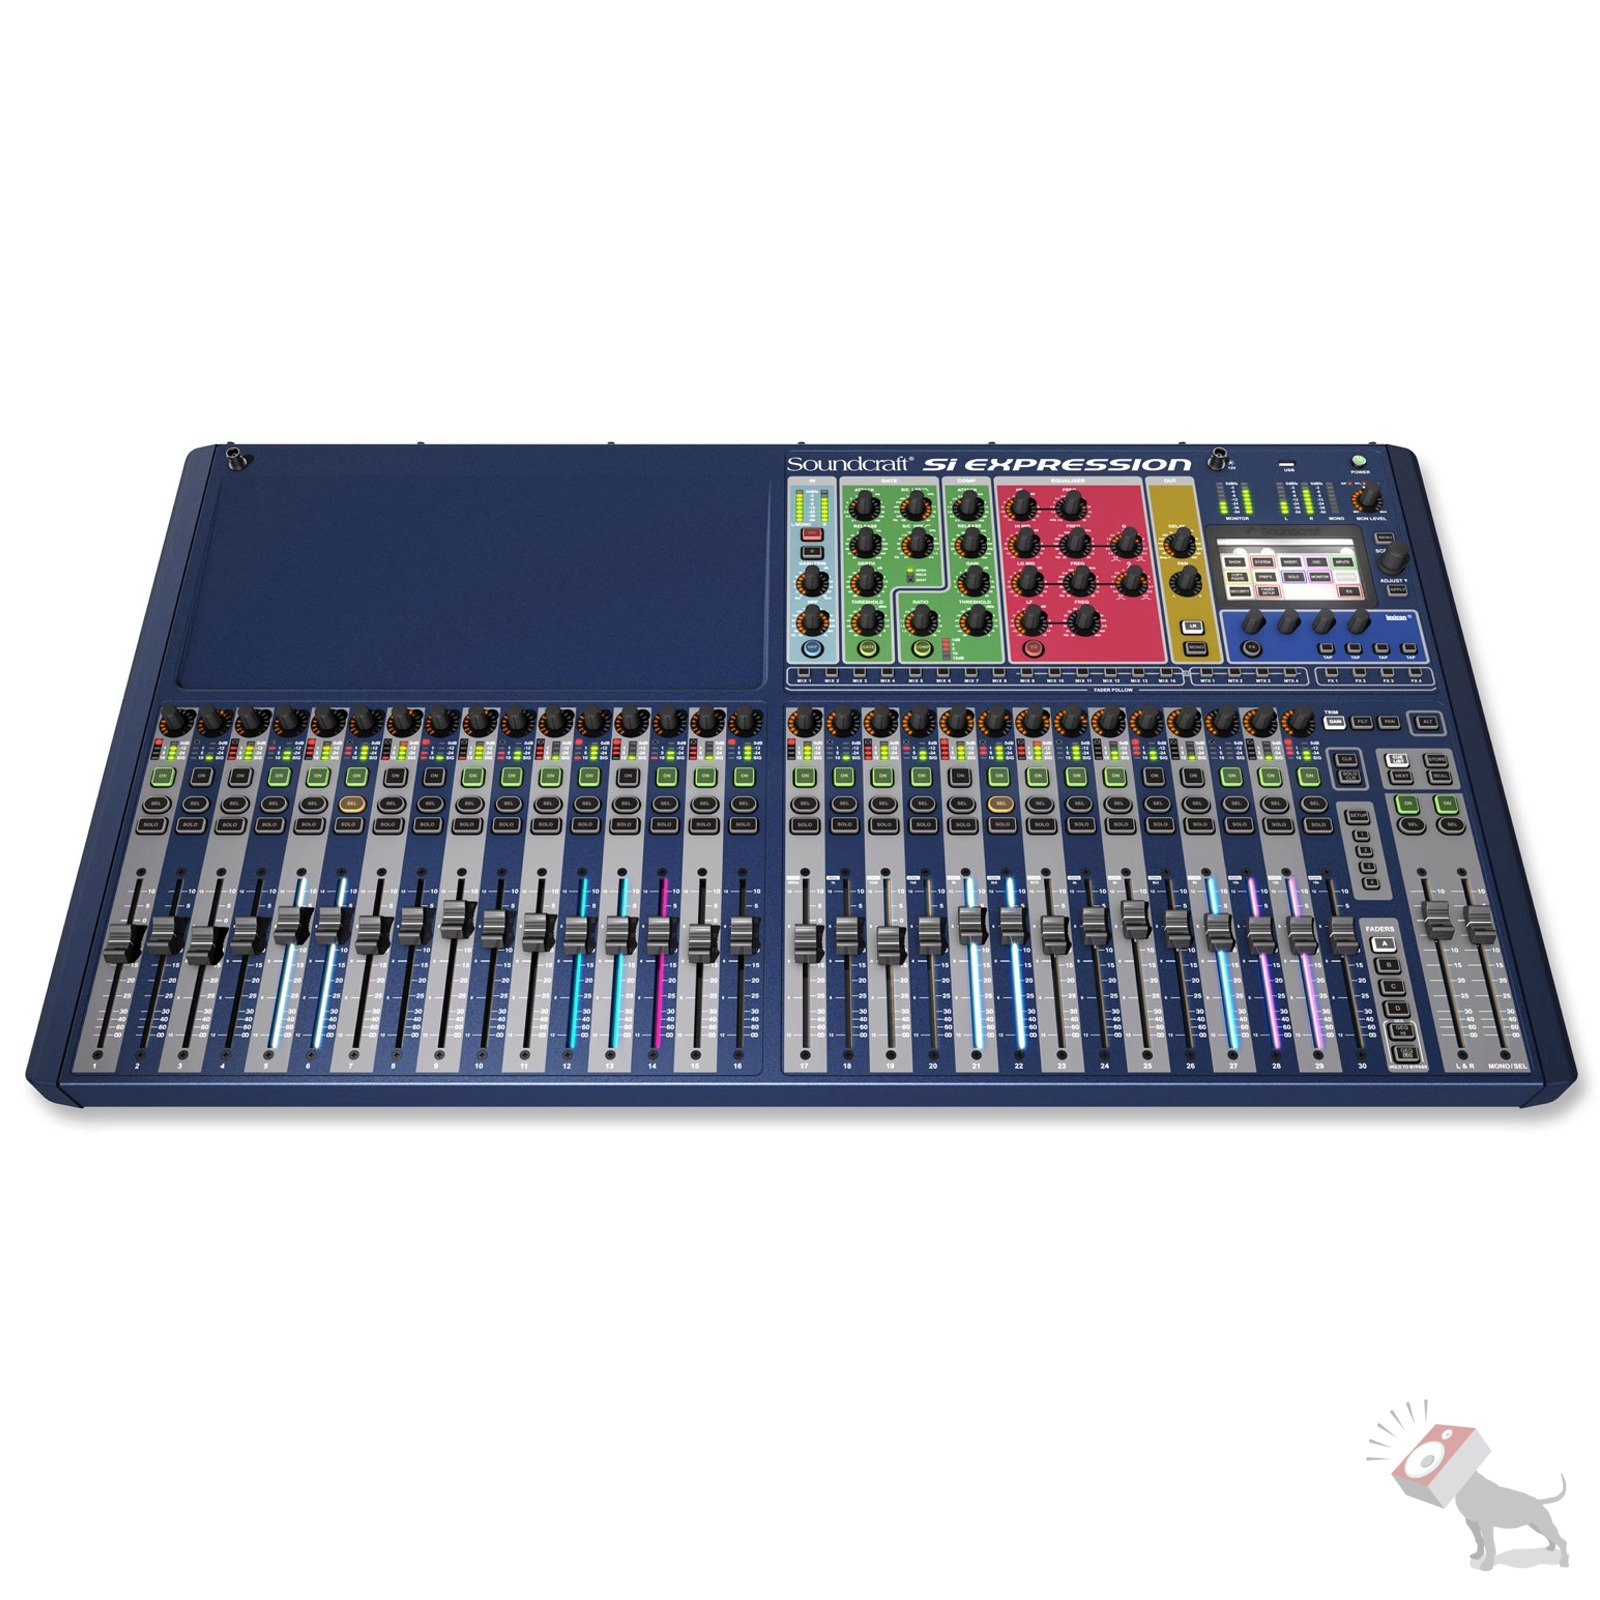 soundcraft si expression 3 32 ch digital mixer 32 channel mixing board studio ebay. Black Bedroom Furniture Sets. Home Design Ideas